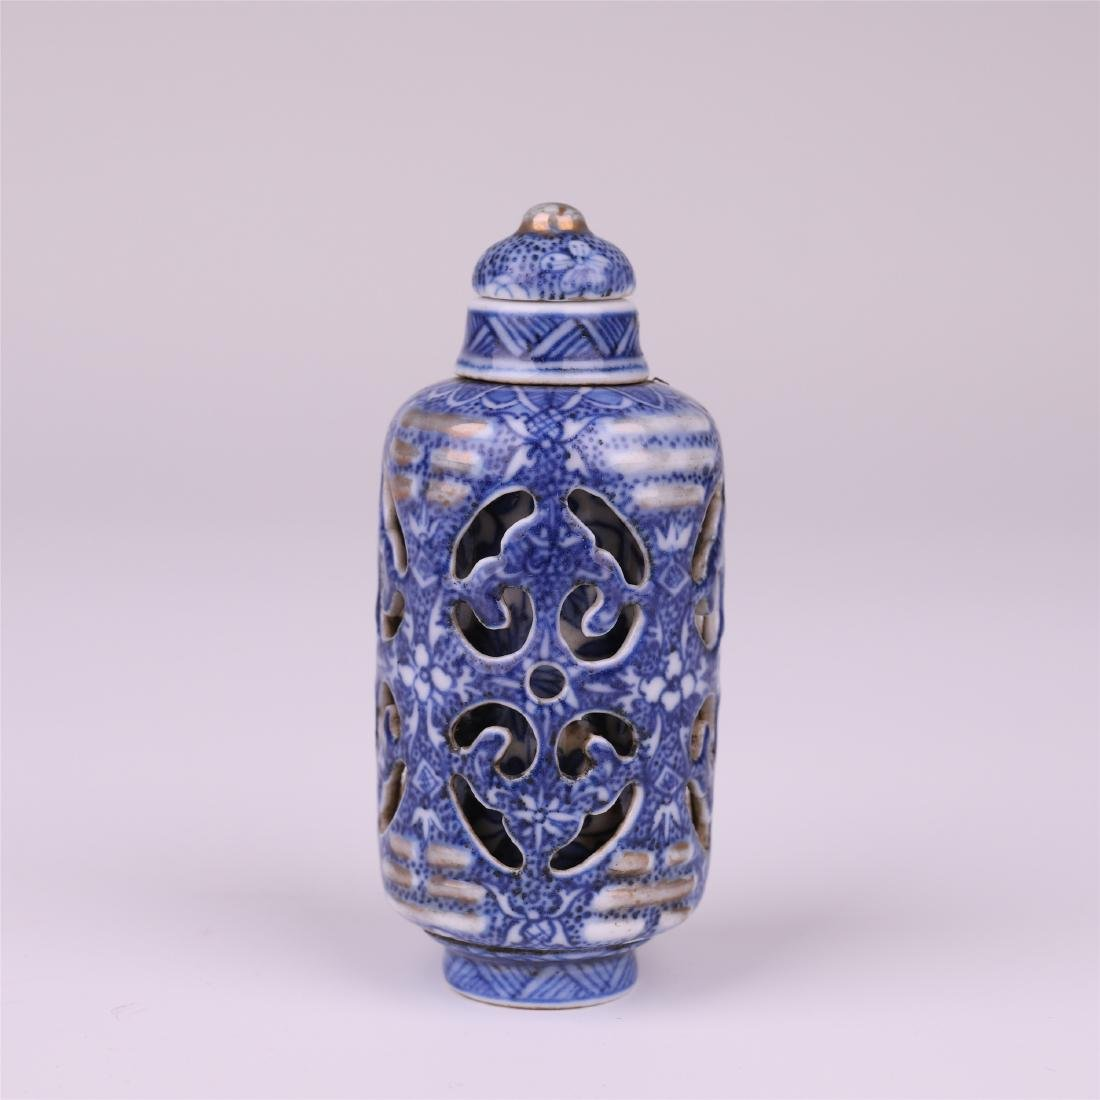 CHINESE PORCELAIN BLUE AND WHITE SNUFF BOTTLE